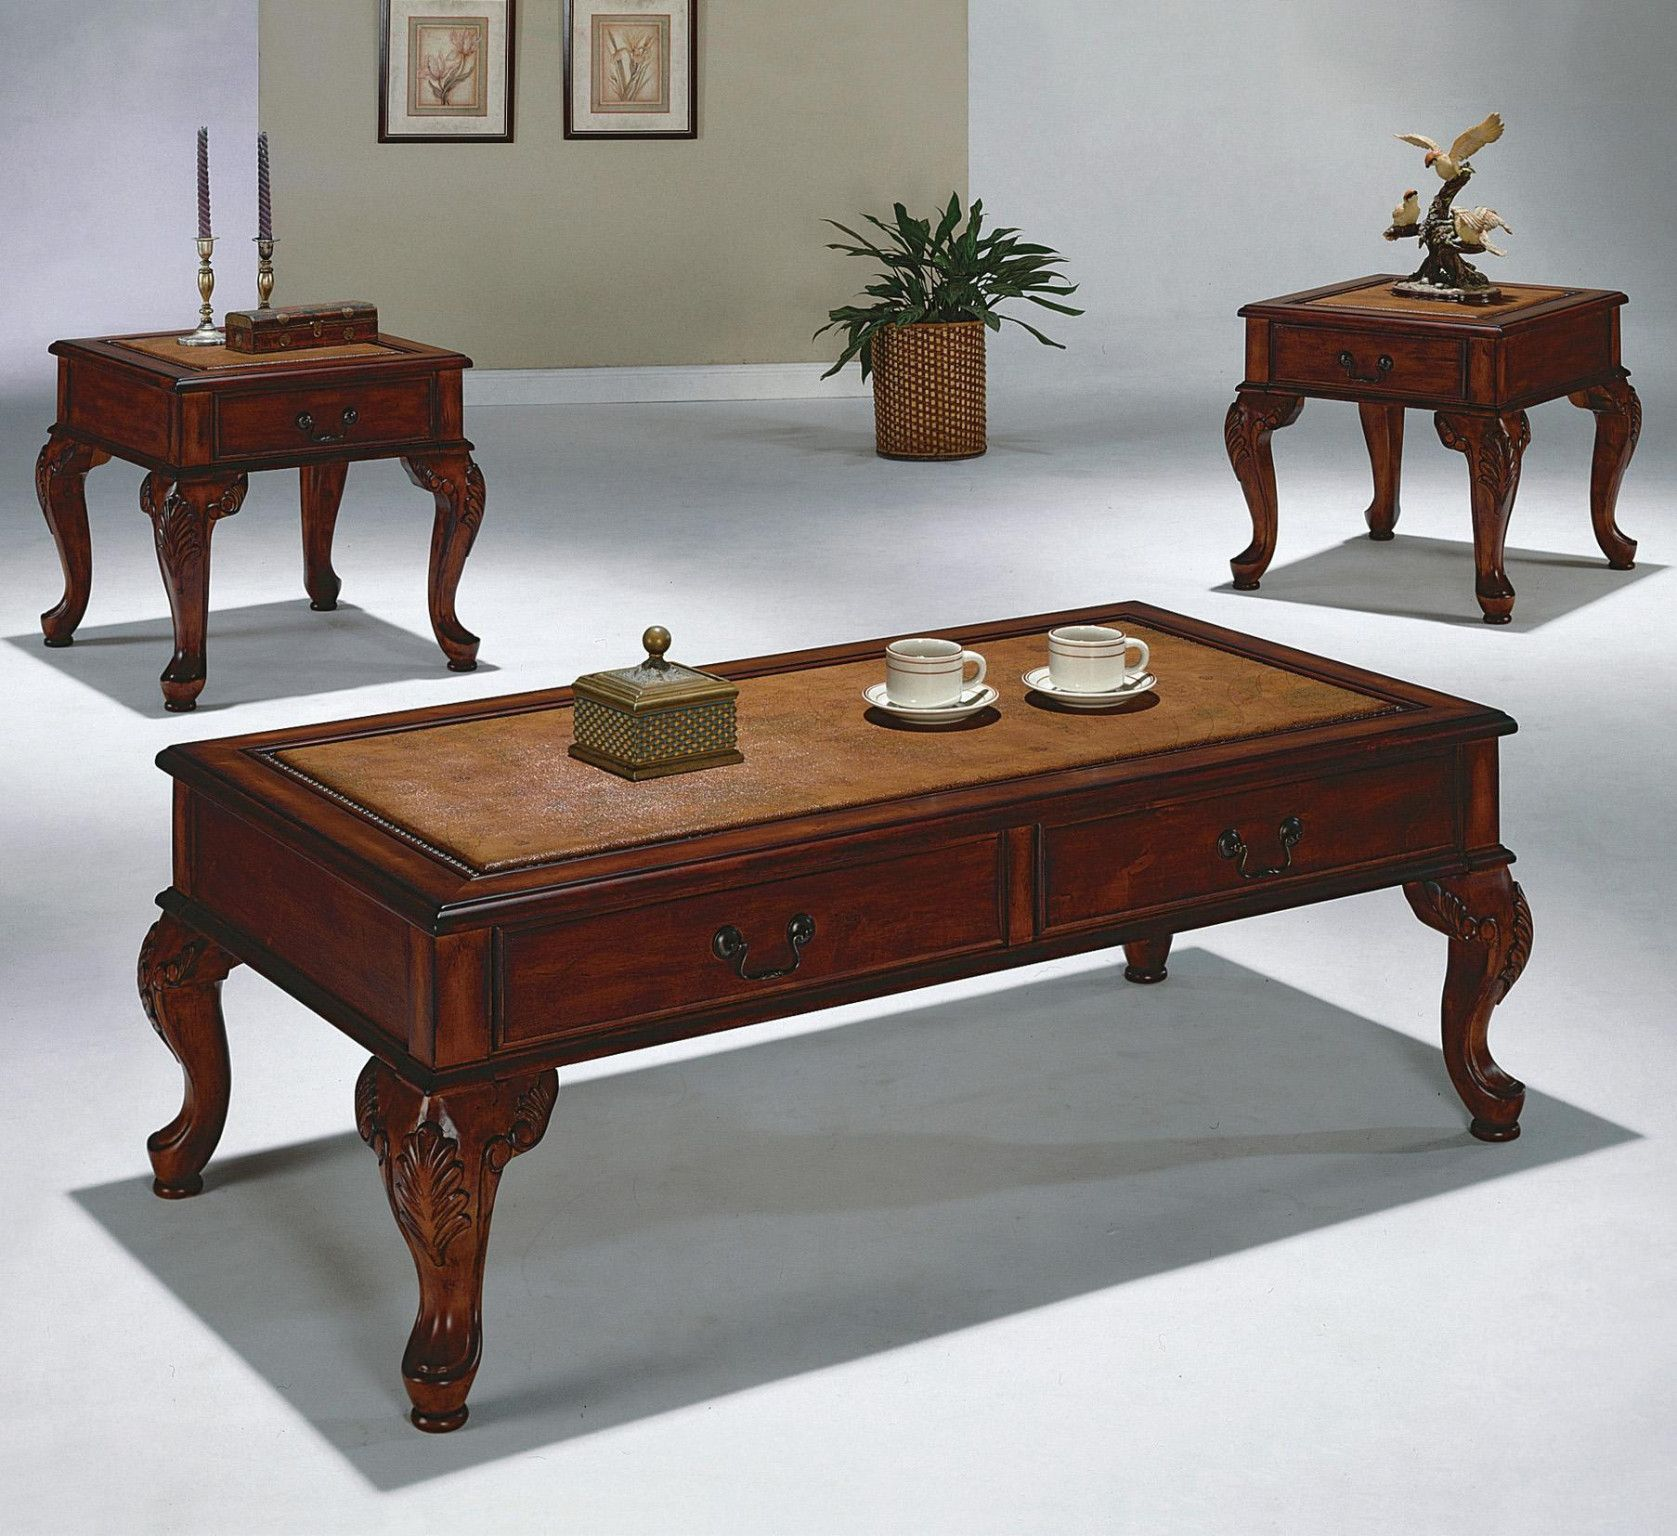 Explorer 3 Piece Table Set Coffee And 2 End Tables 299 00 Coffee Table 189 00 50 X 26 X Cherry Wood Coffee Table Coffee Table Coffee Table Rectangle